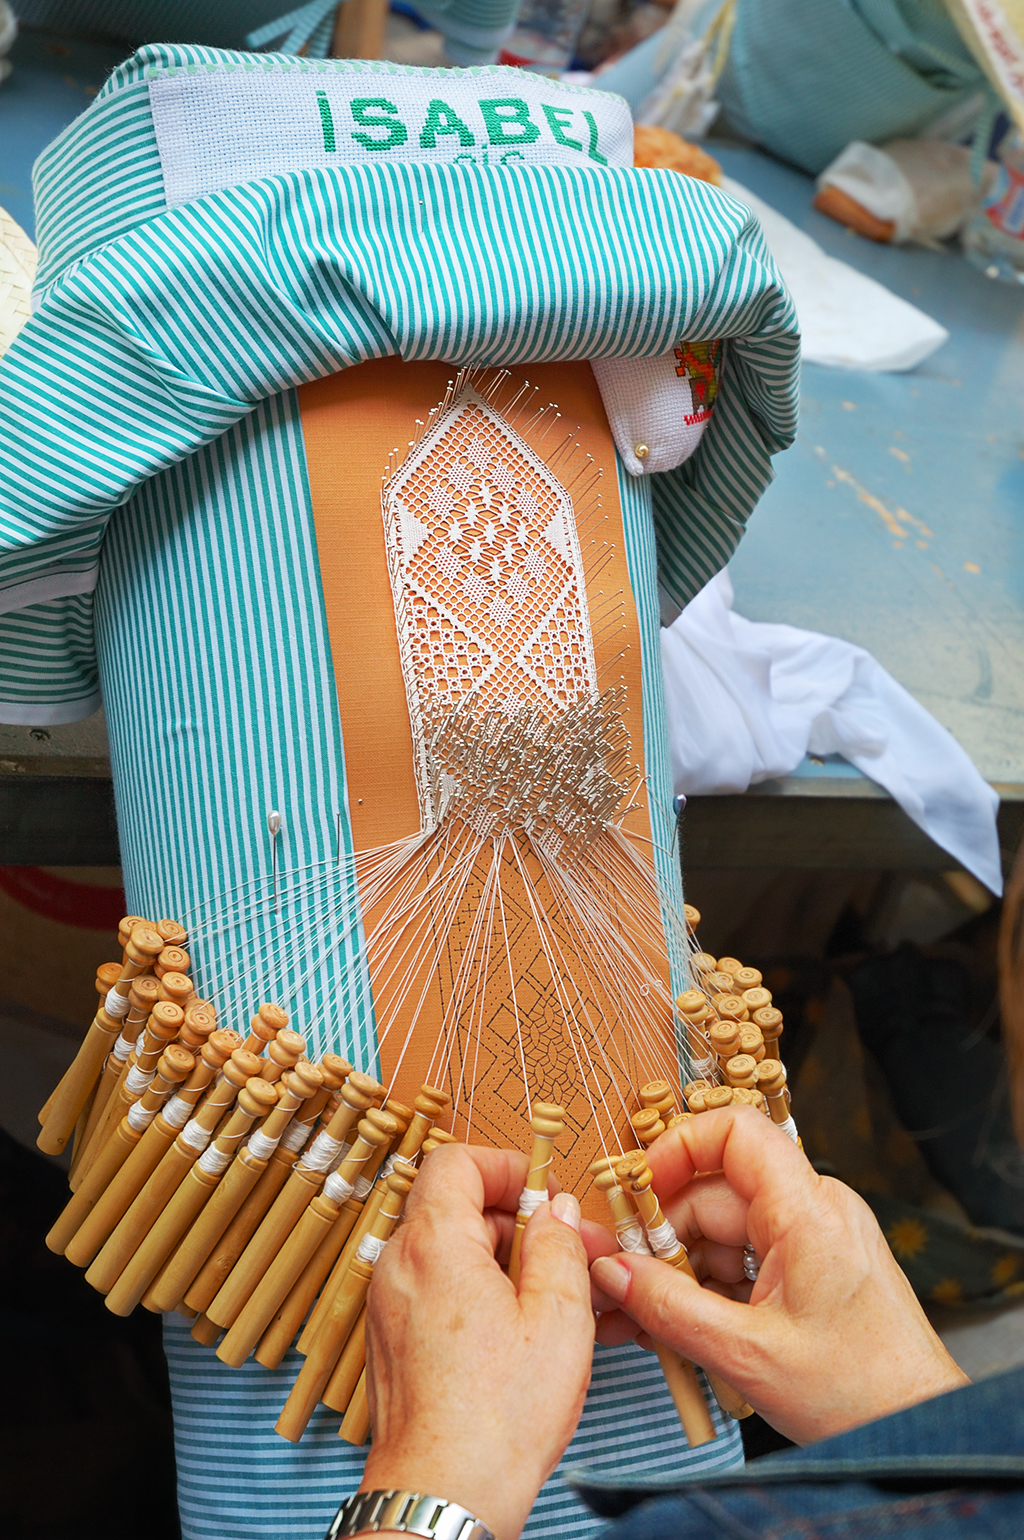 Bobbin Lace or Pillow Lace work - Encaje de Bolillos